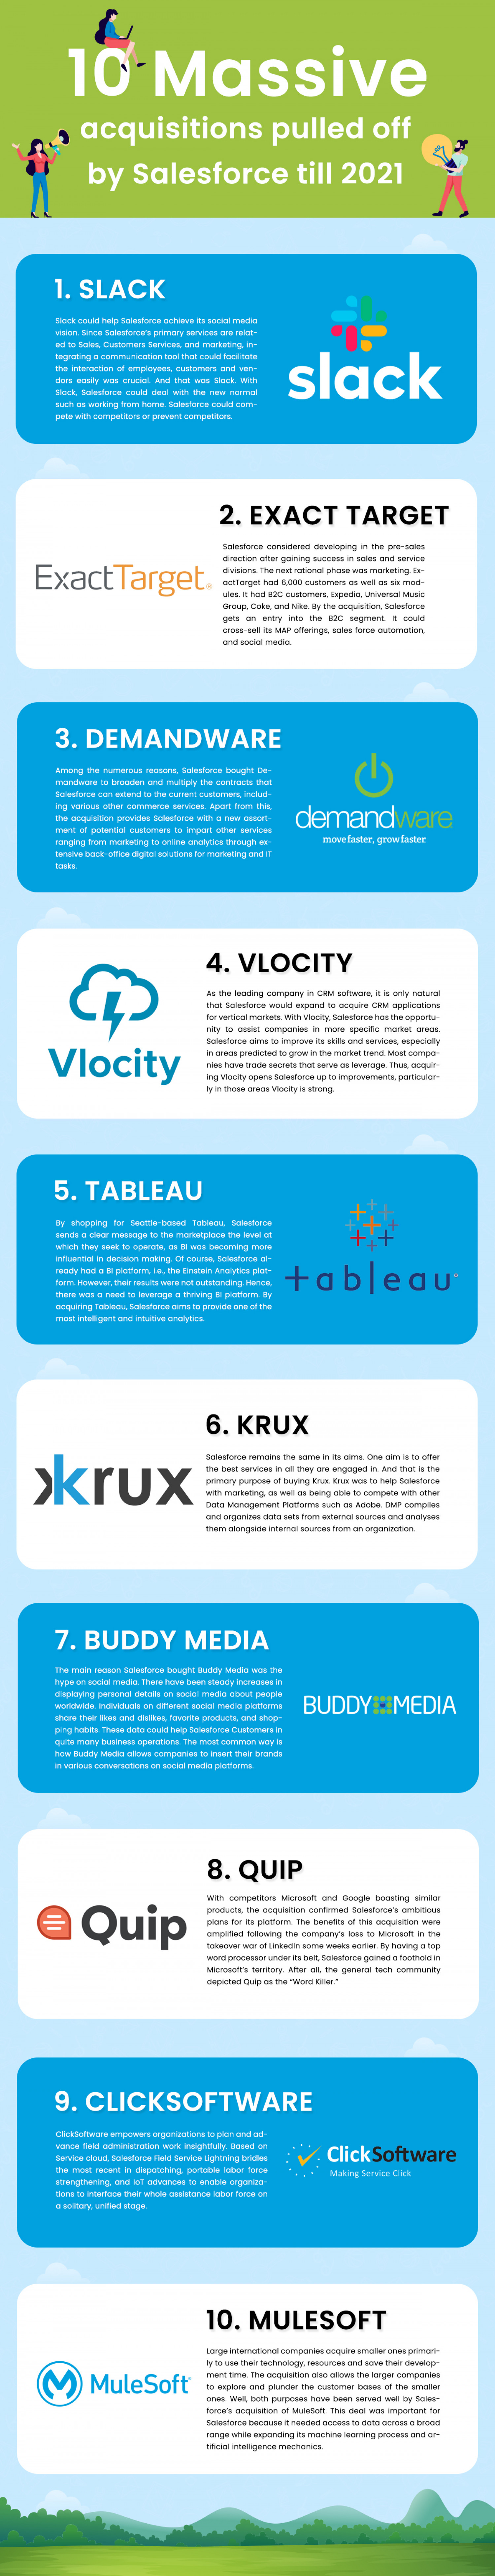 10 Massive acquisitions pulled off by Salesforce till 2021 Infographic